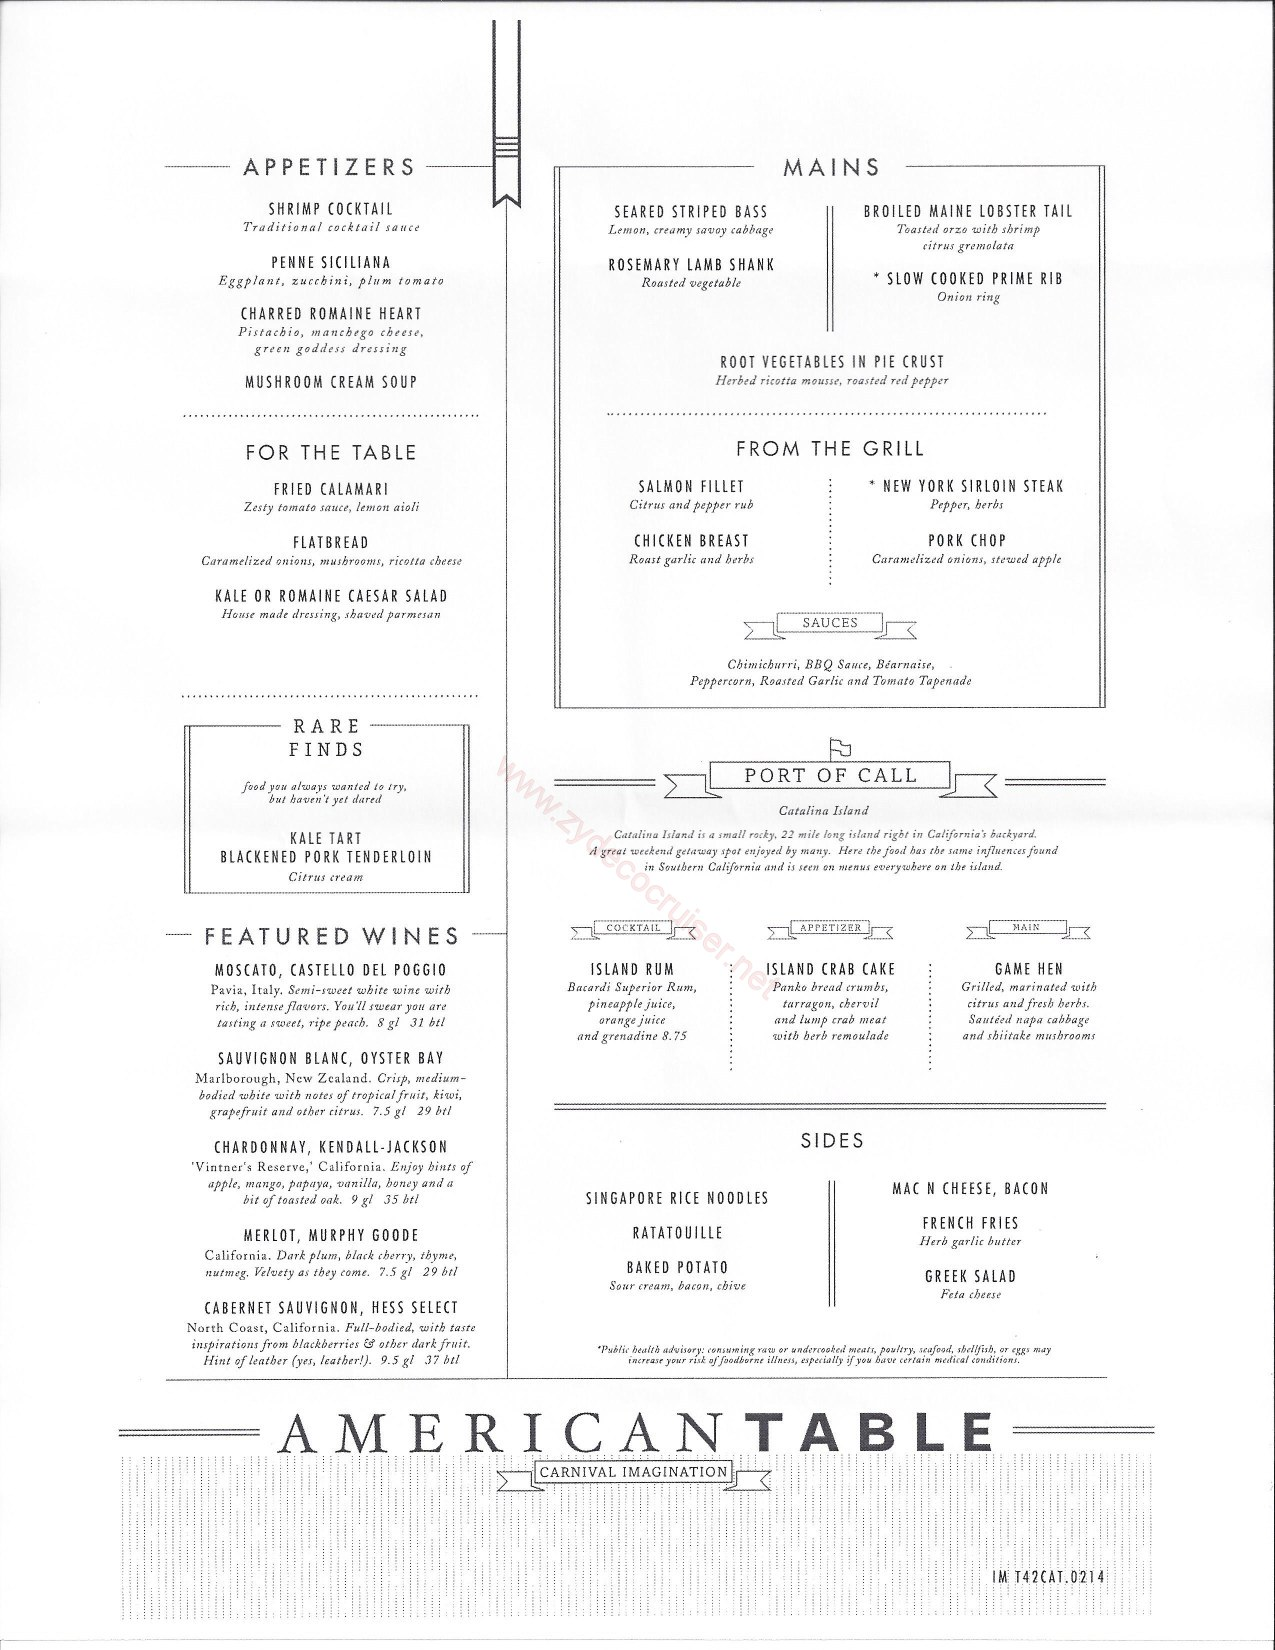 Carnival Imagination American Table MDR Menus Catalina  : IM20Day20320Catalina from www.zydecocruiser.net size 1275 x 1650 jpeg 341kB